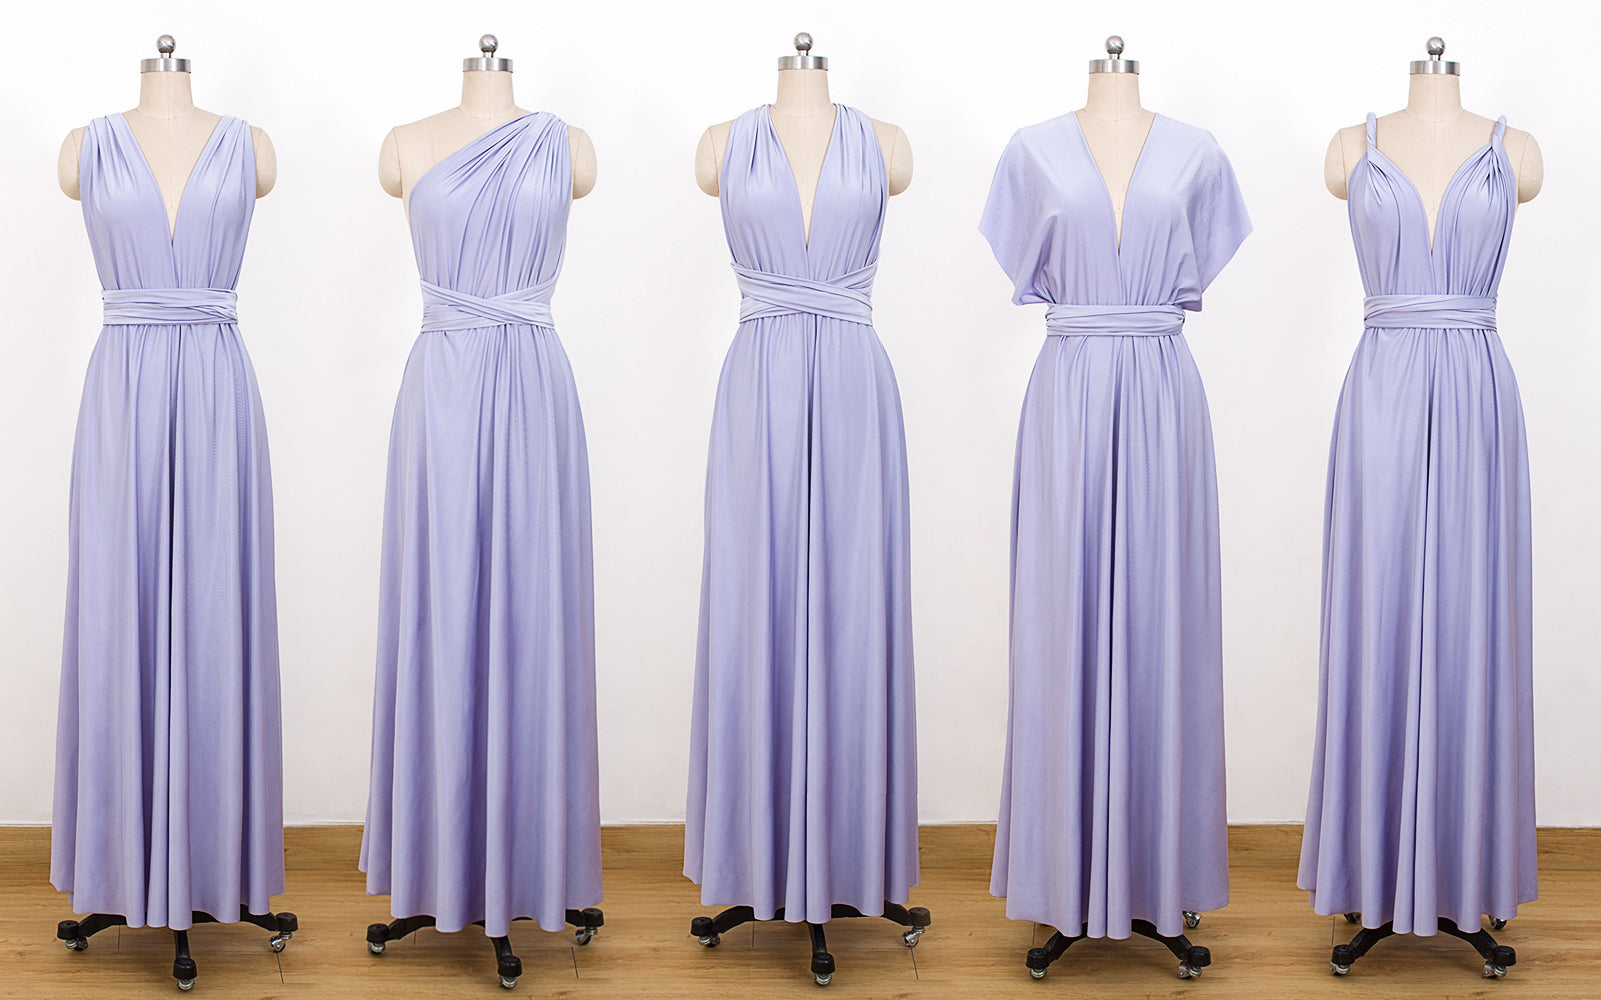 842c47326cdc Lavender Convertible Bridesmaid Dresses,Infinity Dresses, Multiway Wrap  Dresses - NICEOO